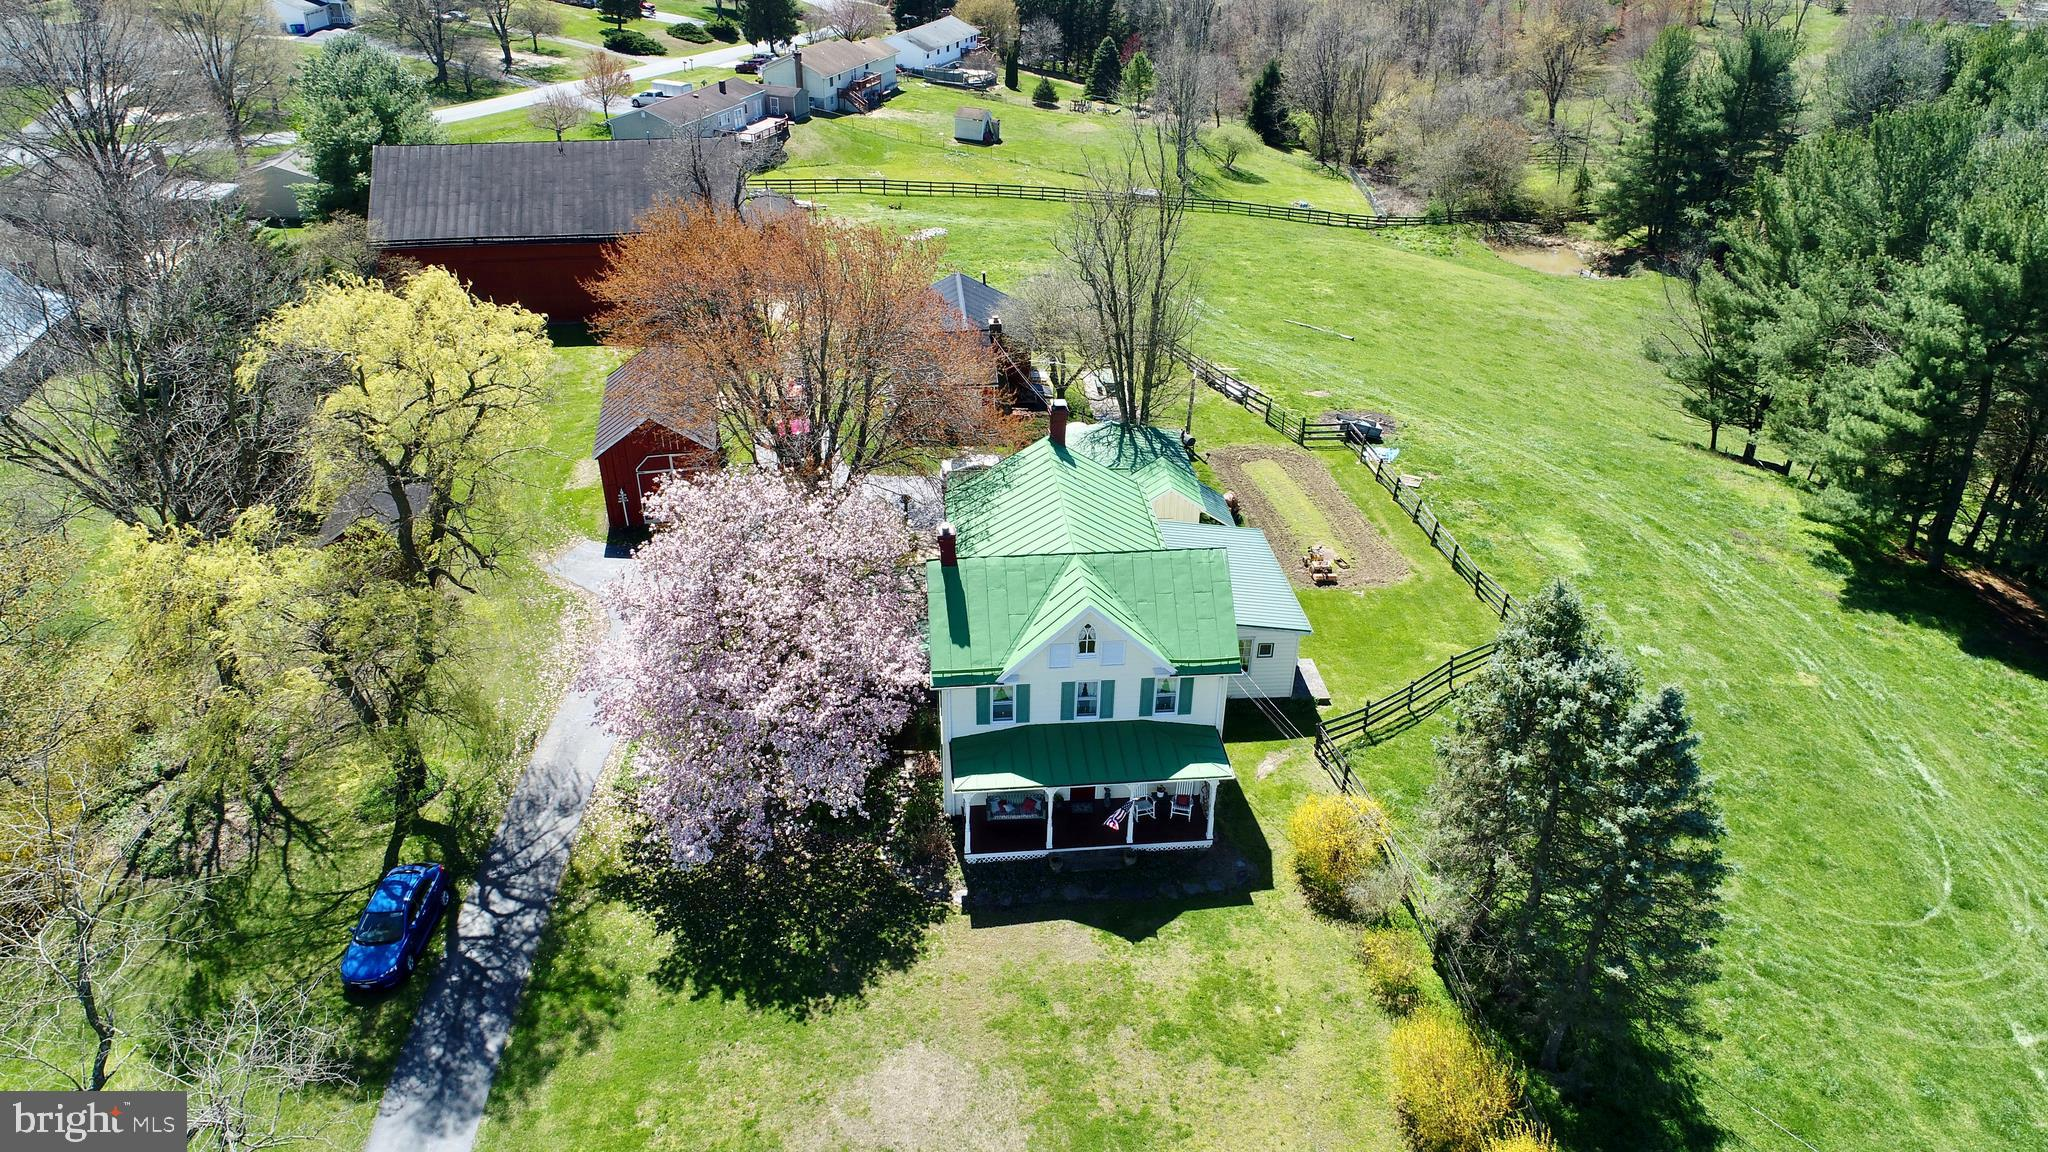 Historic Farmhouse resting on 3 fenced acres of beautiful rural farmland.  This property has unlimit